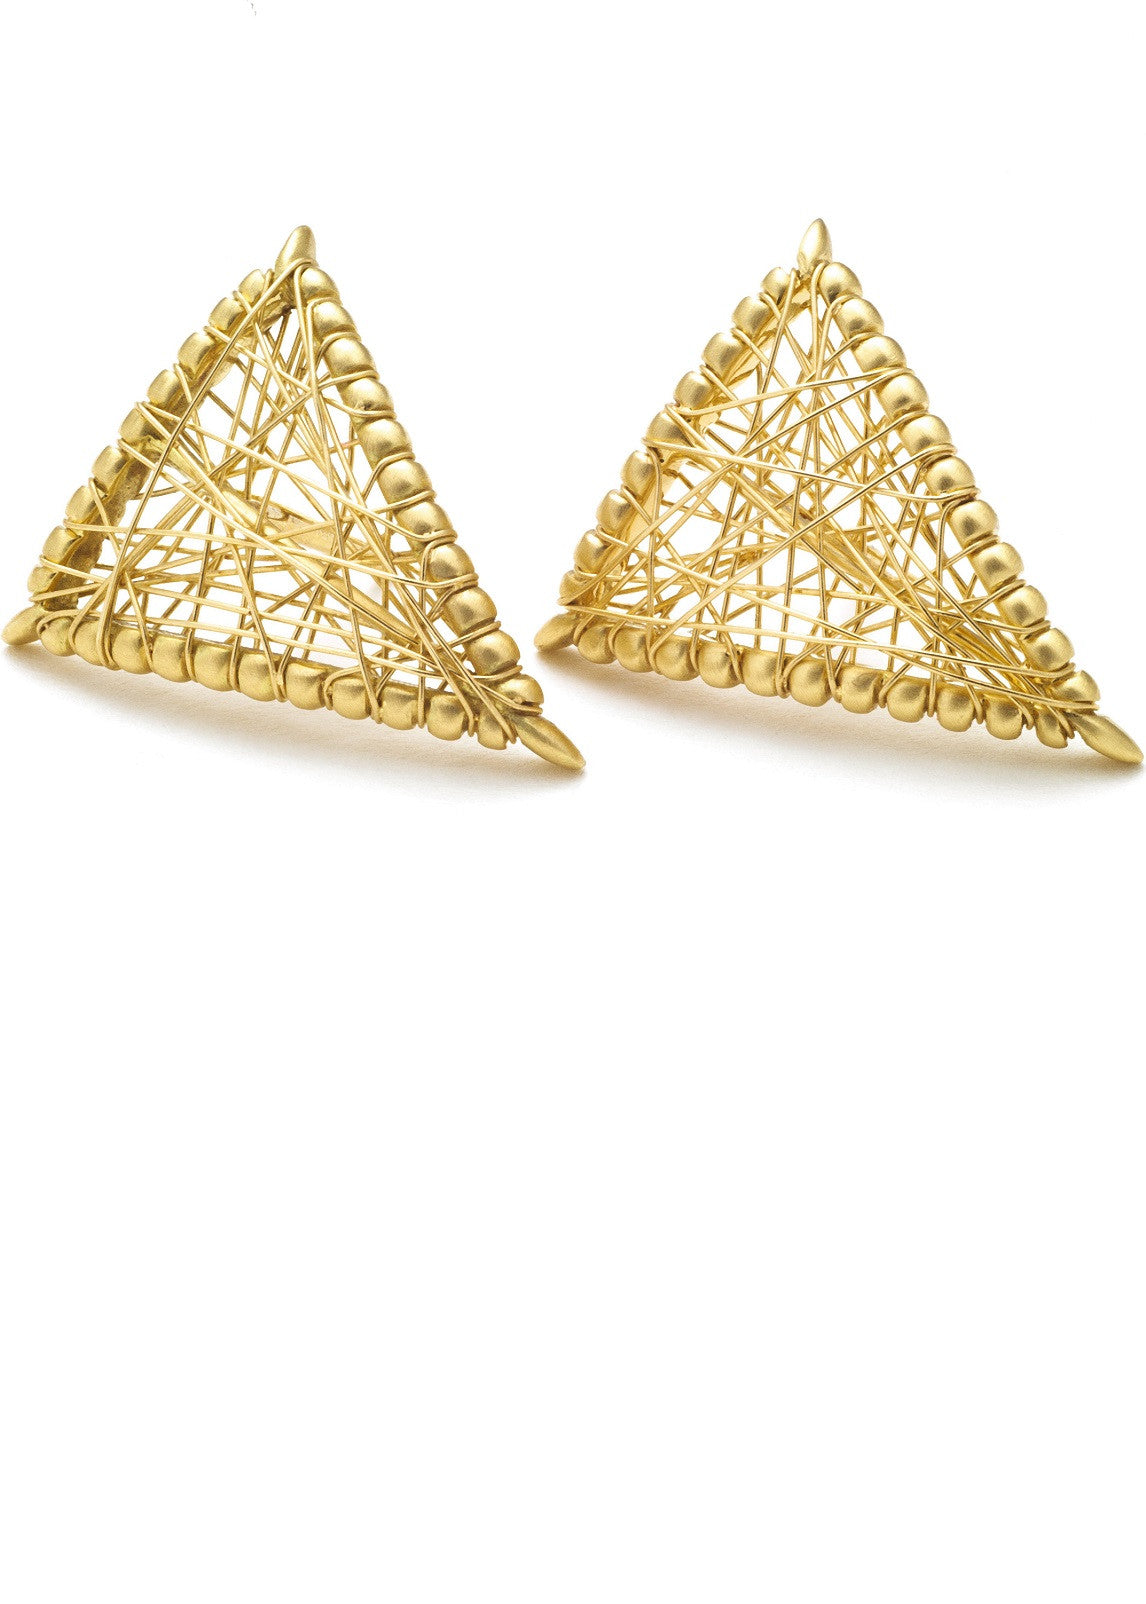 Lola Fenhirst 18K gold sybil shield stud earrings